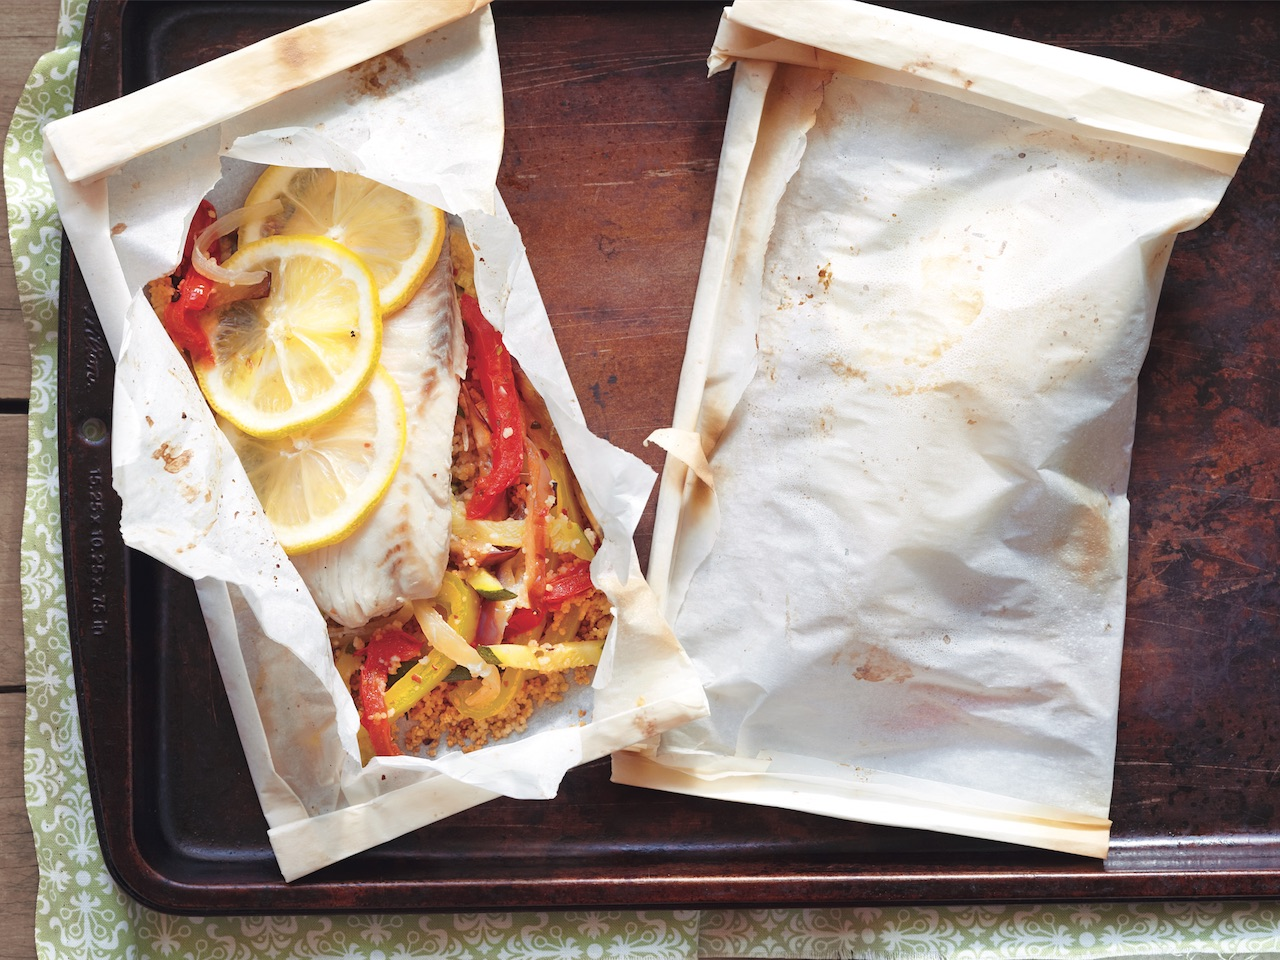 How to cook meat: Baked fish en papilotte